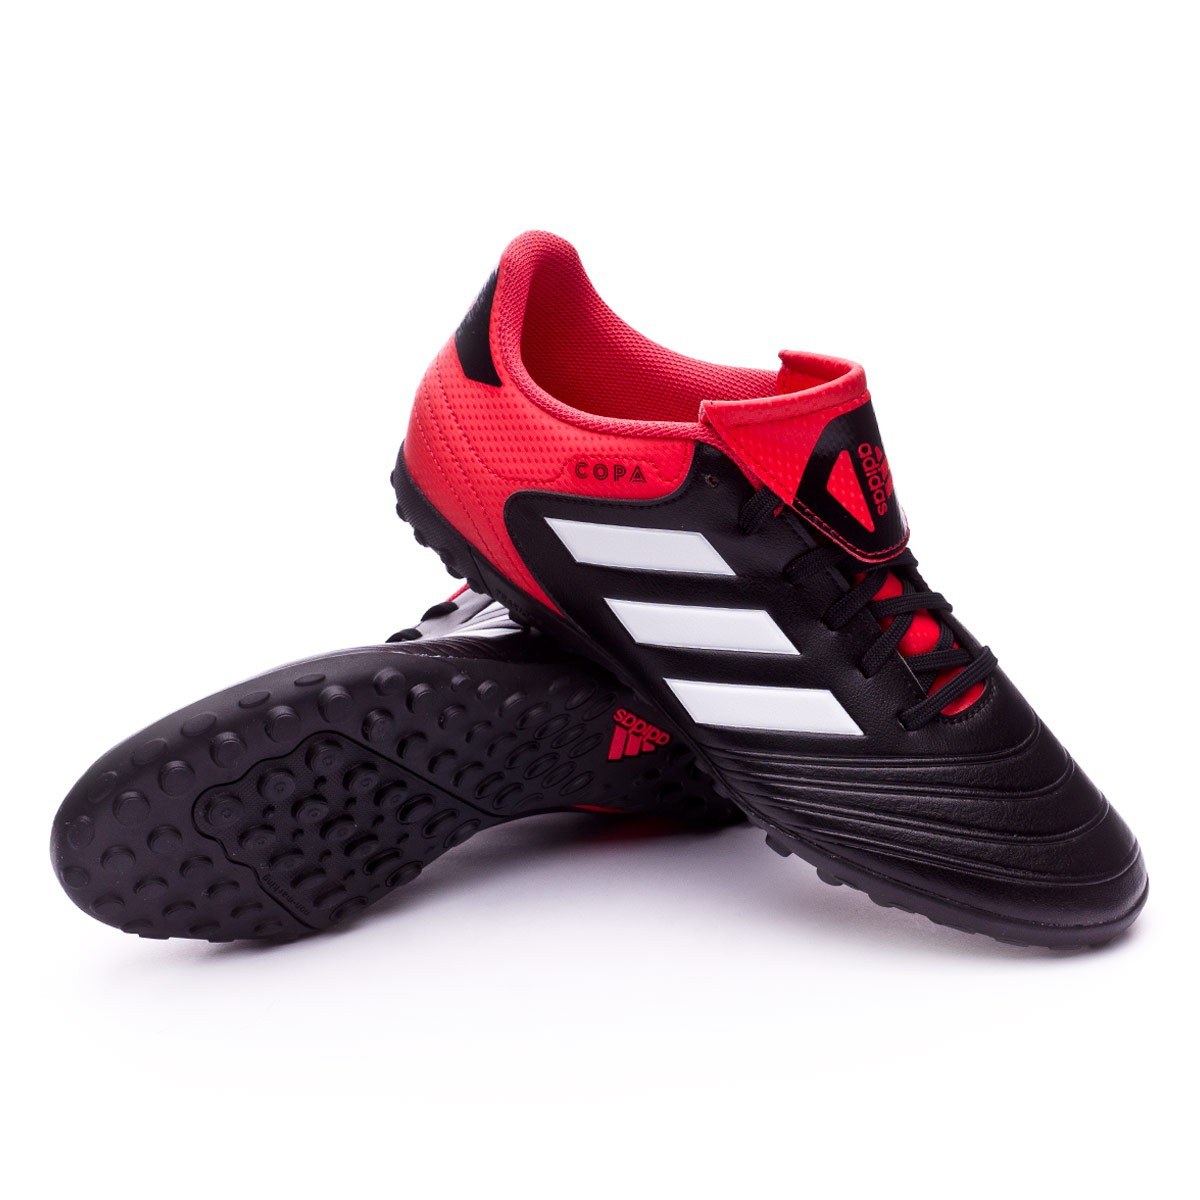 buy popular e1c76 e55d0 adidas Copa Tango 18.4 Turf Football Boot